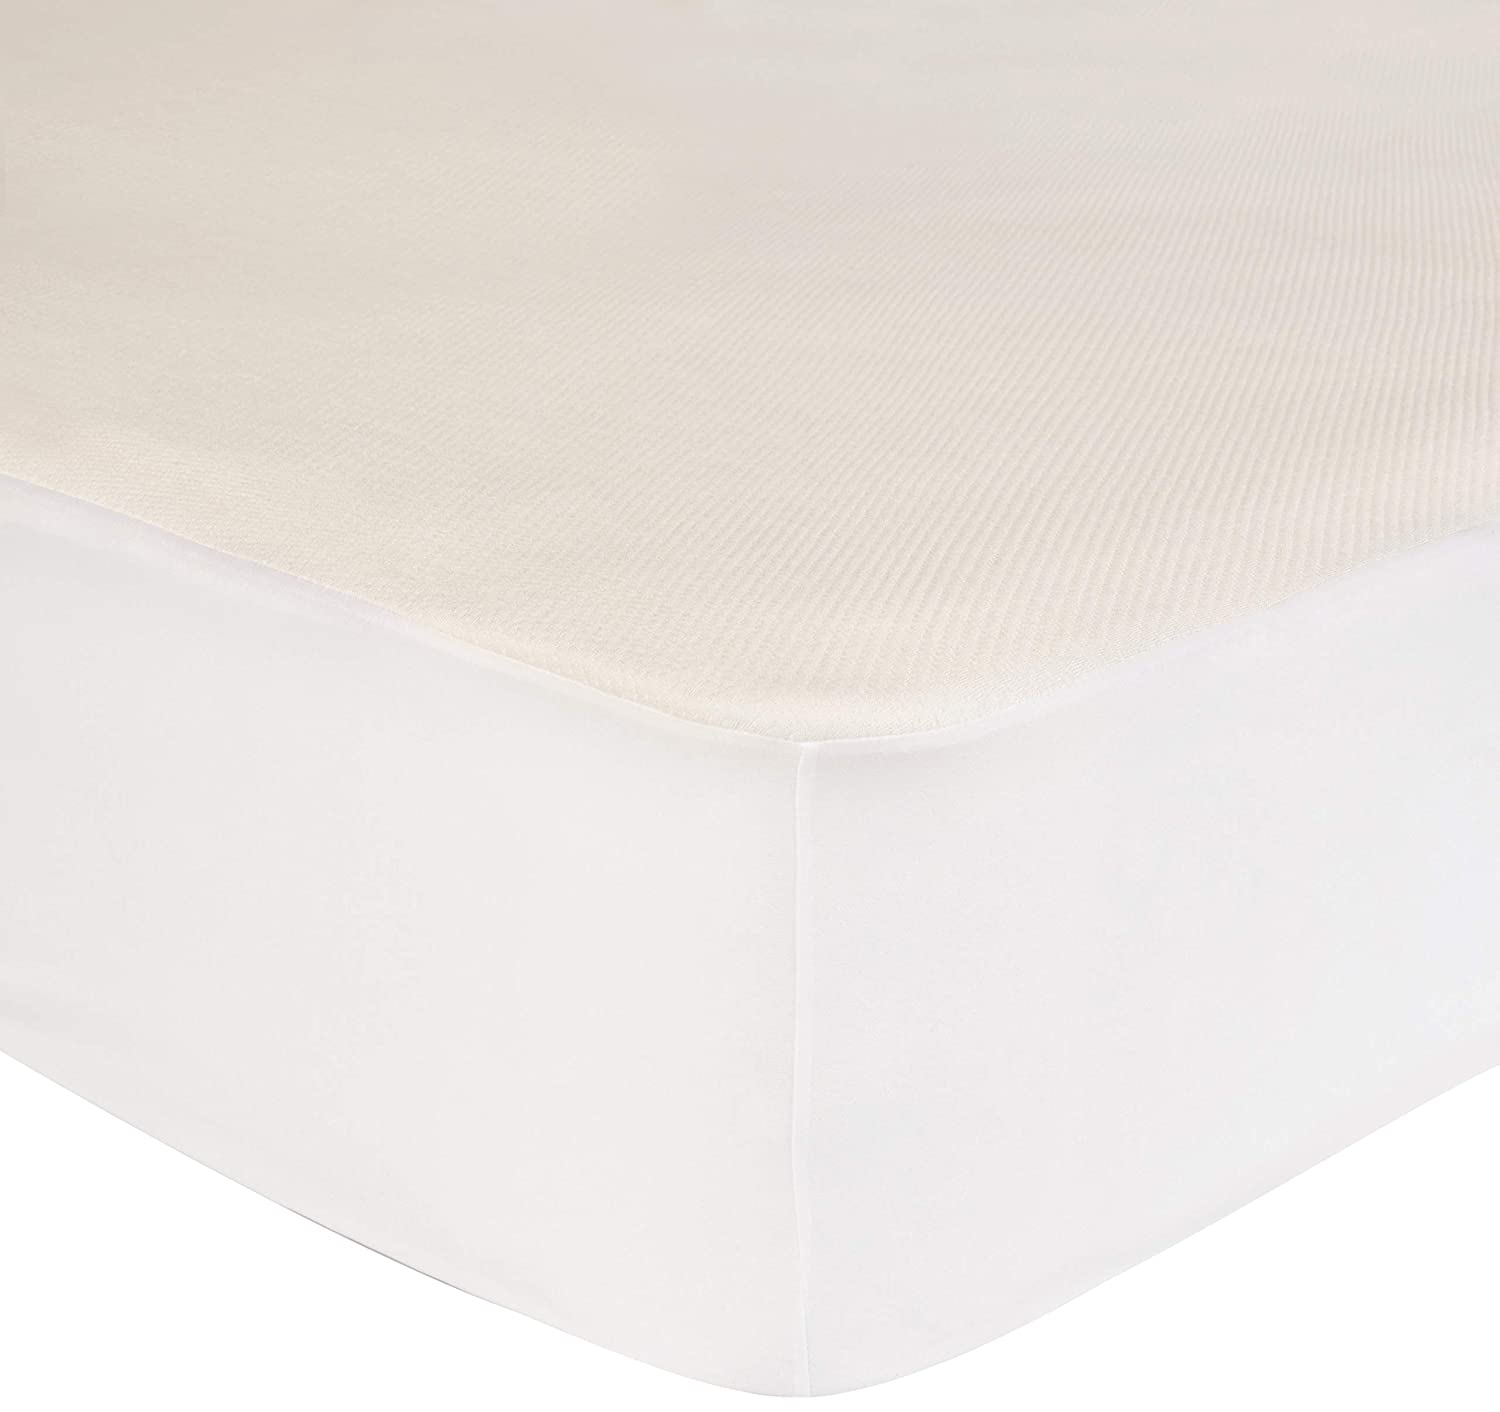 AmazonBasics Conscious Series Cool-Touch Rayon Bamboo Mattress Protector - Queen